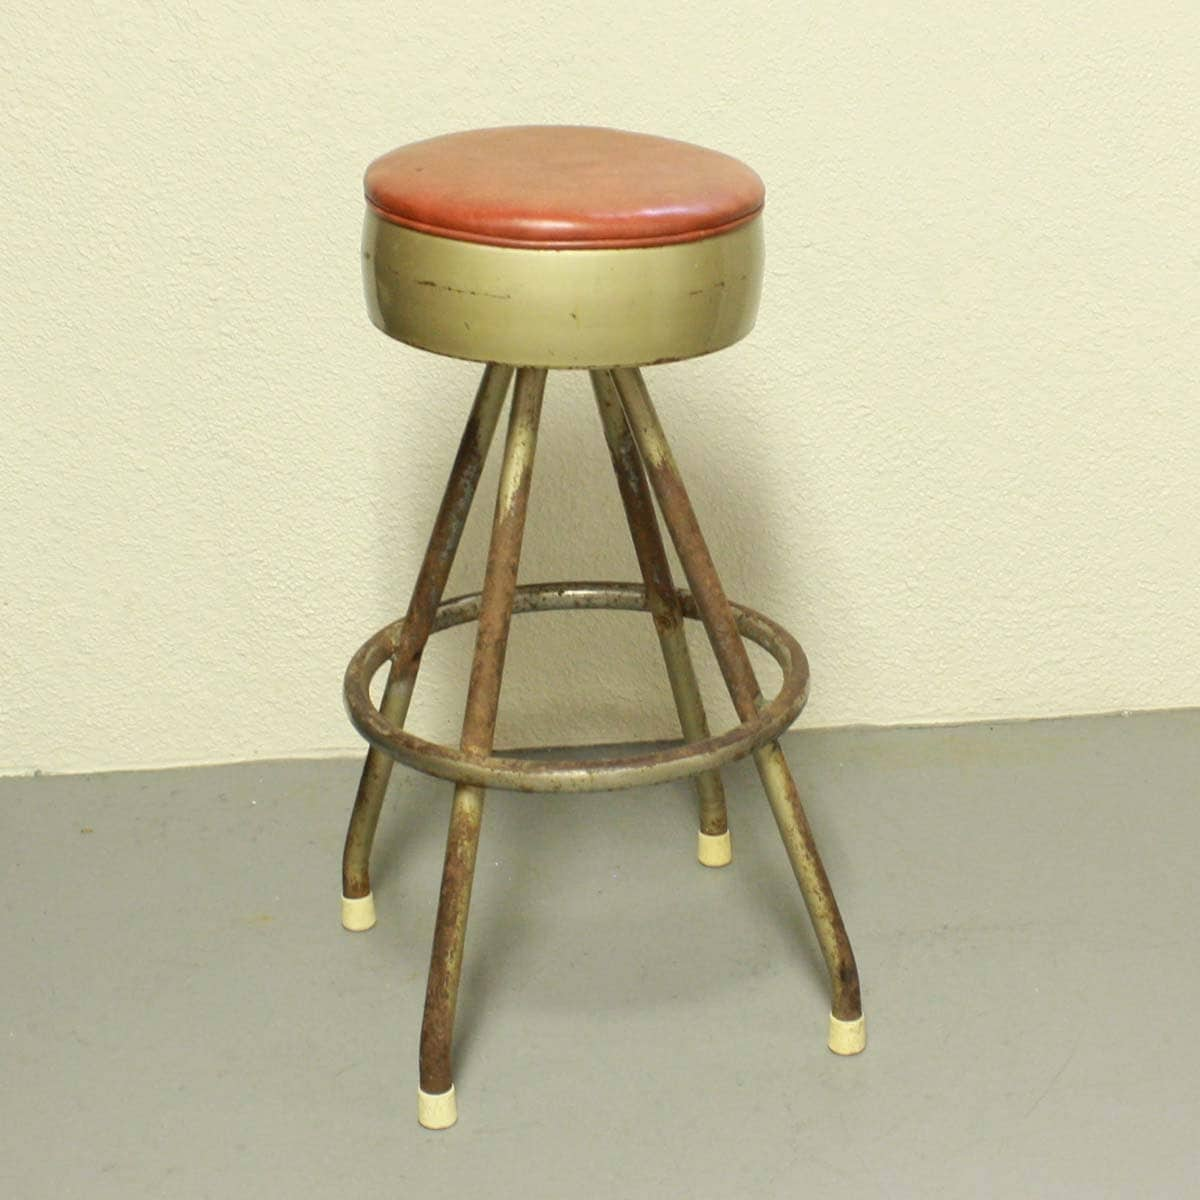 Vintage Stool Metal Seat Bar Stool Swivel By Oldcottonwood